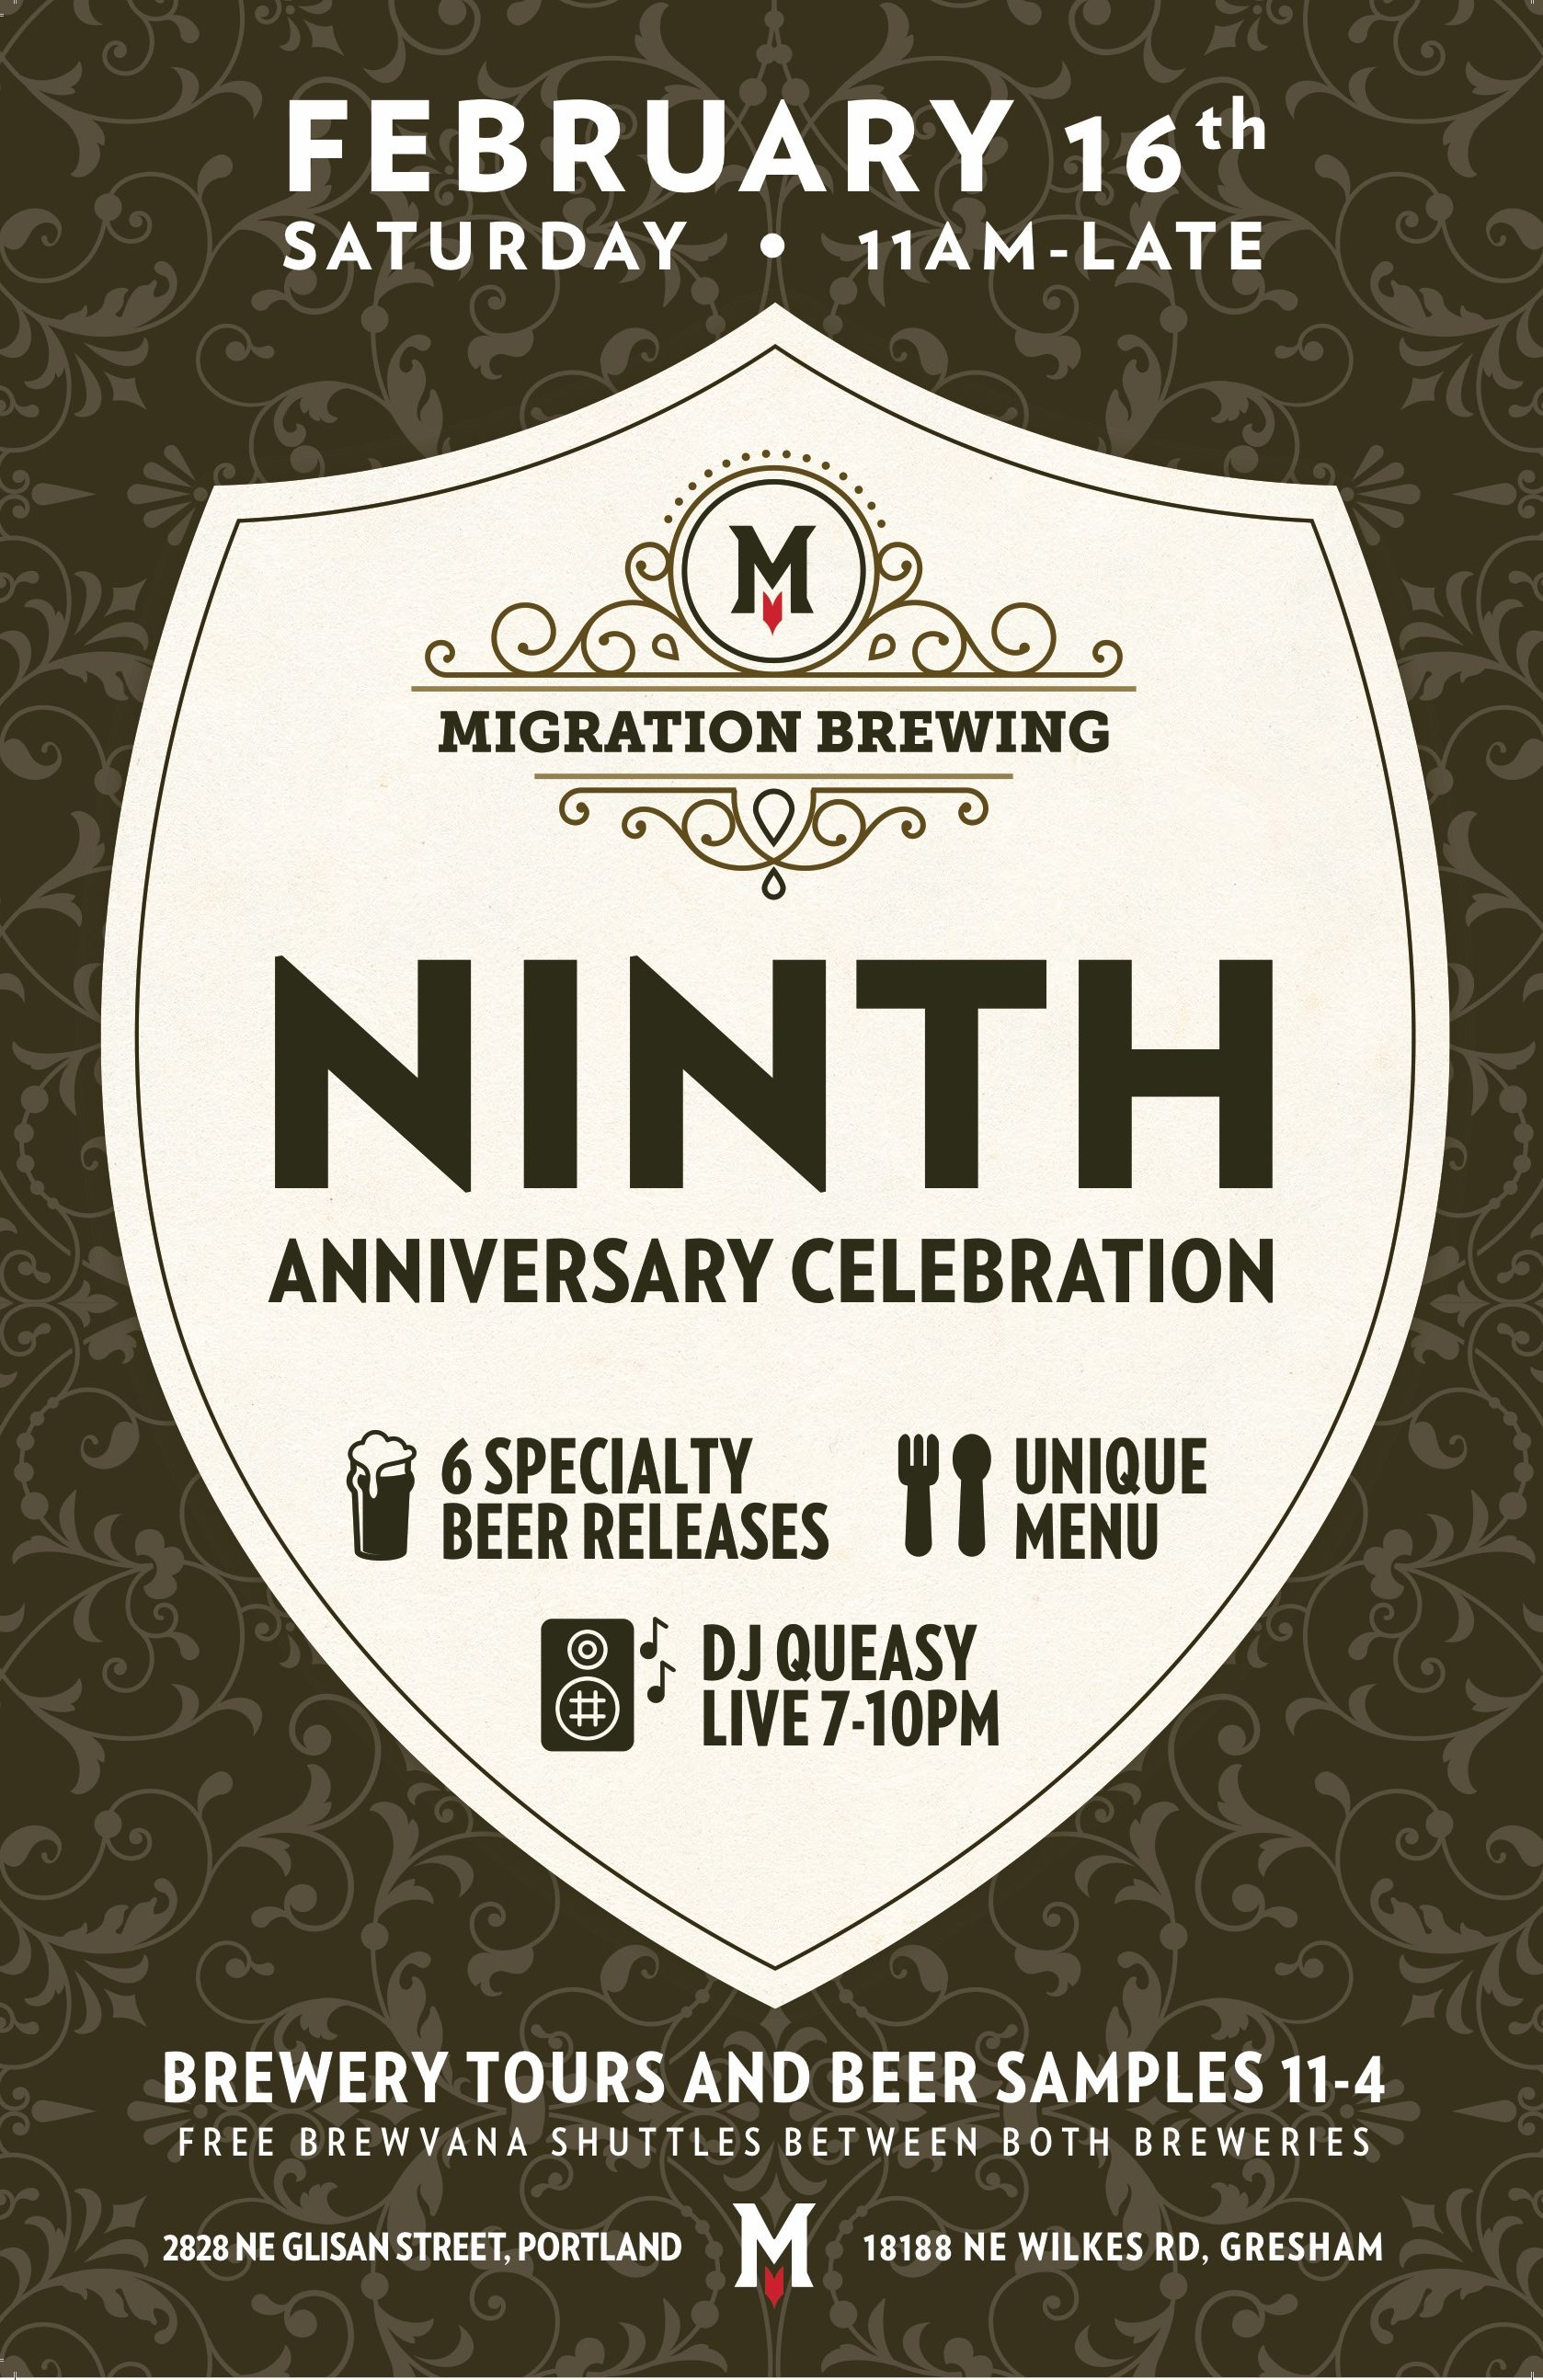 Migration Brewing - 9th Anniversary Poster v4